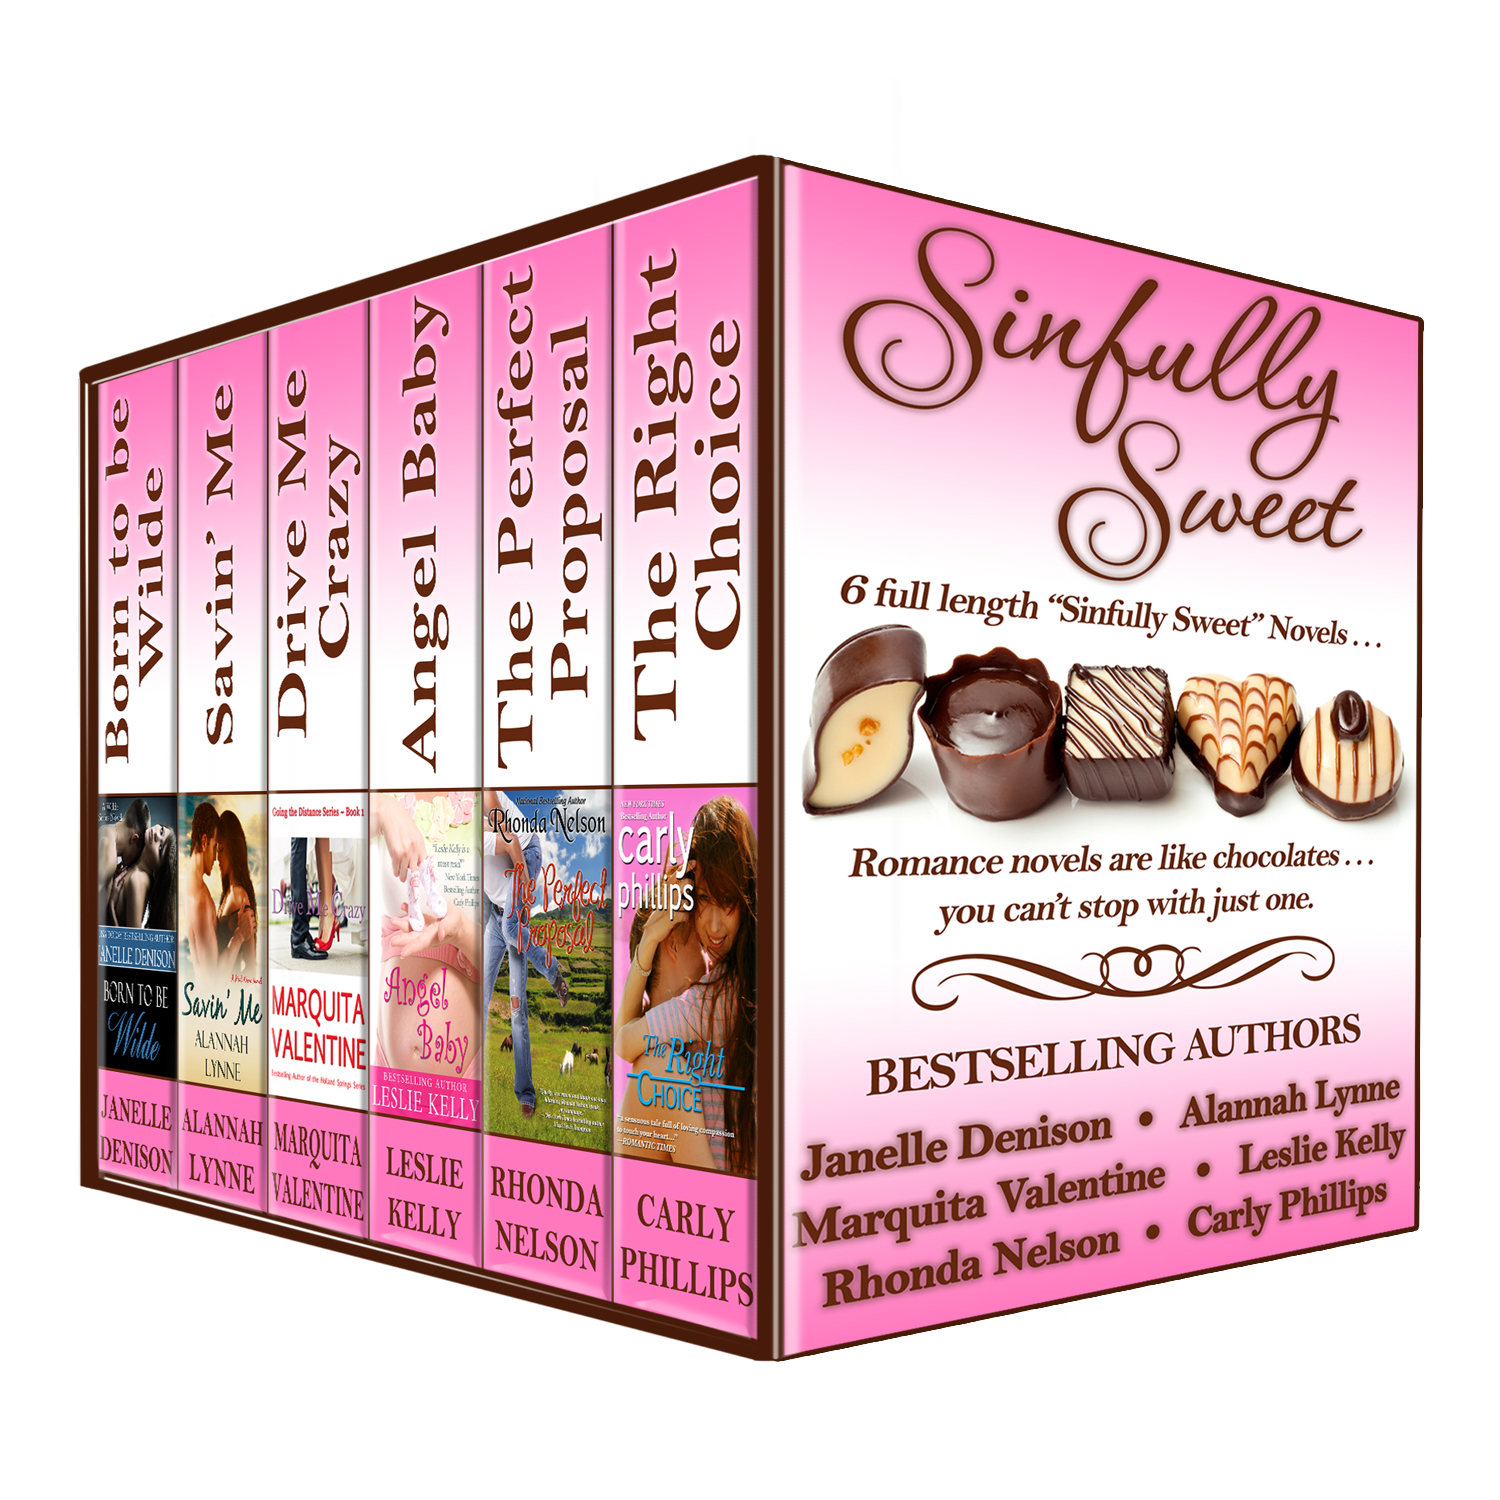 SINFULLY SWEET (Boxed Set of 6 FULL LENGTH Novels)